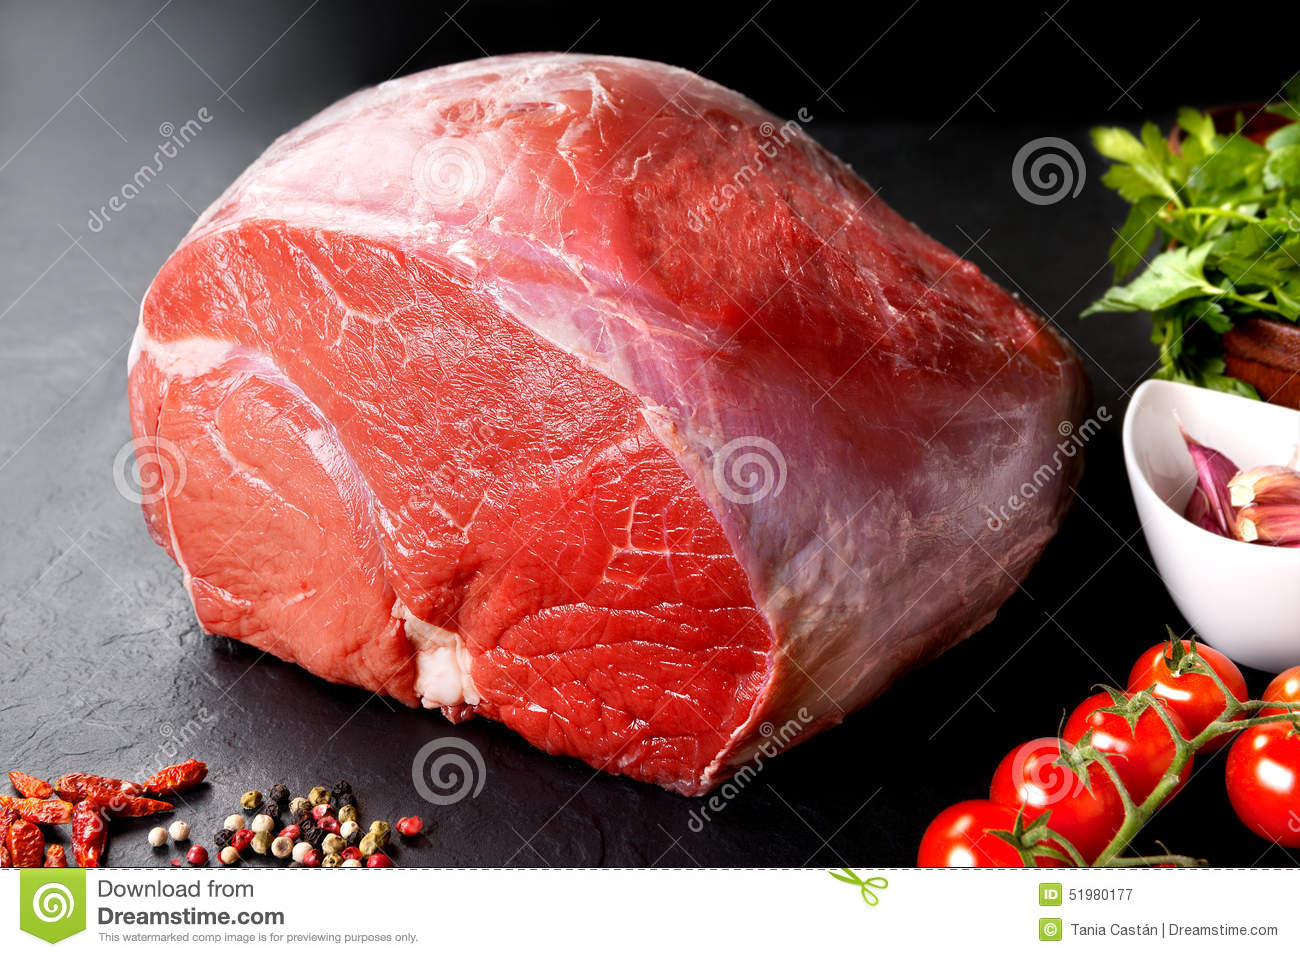 Uncooked fresh pork and beef. Piece of raw red meat with black background